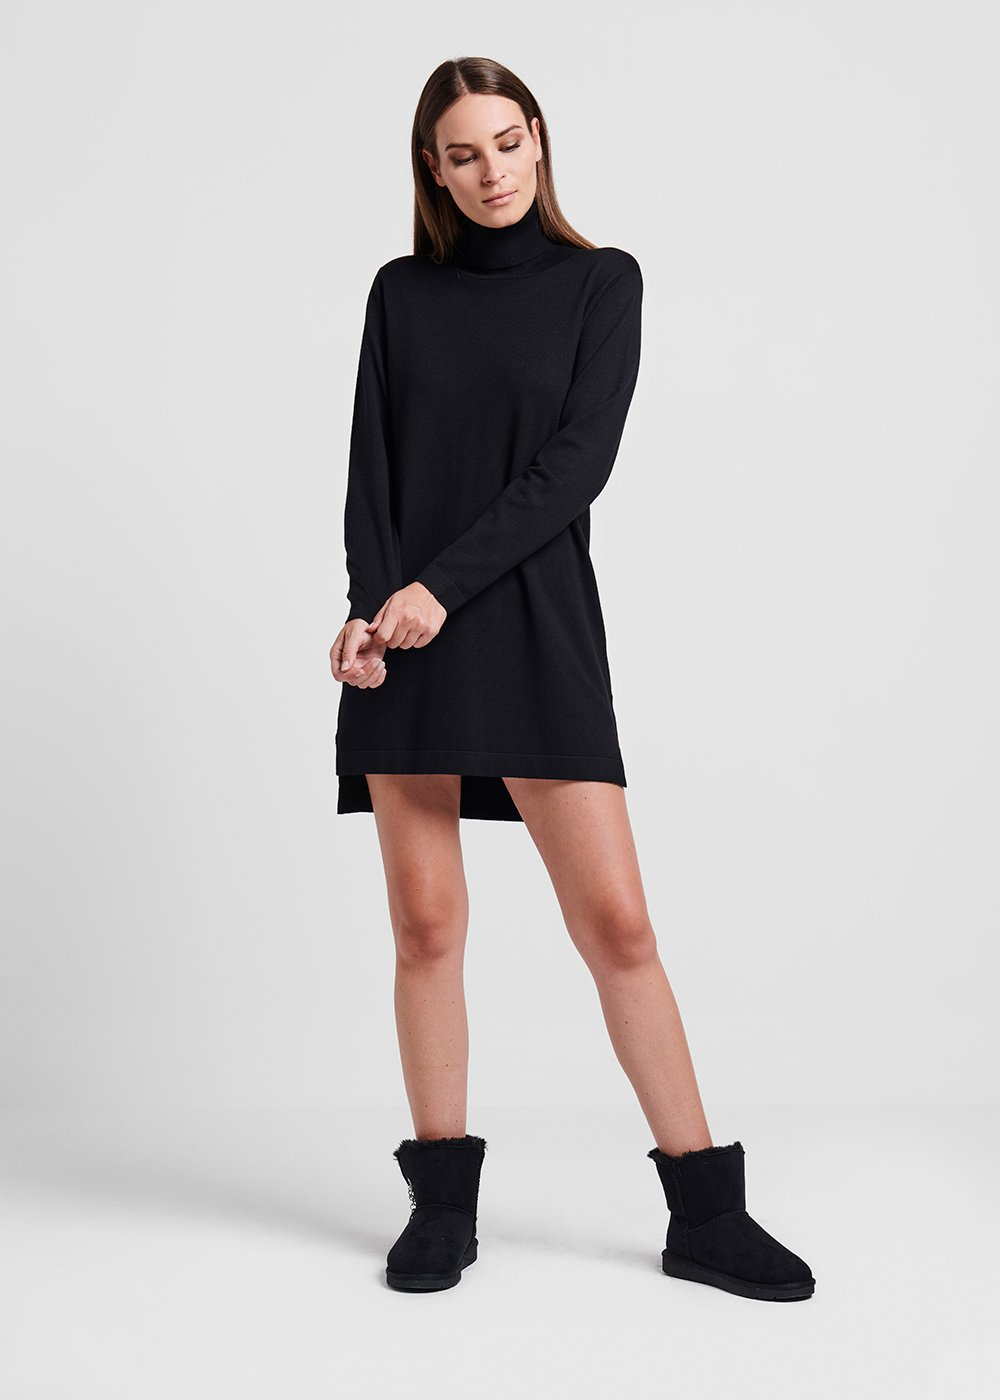 Bouclé viscose dress - Black - Woman